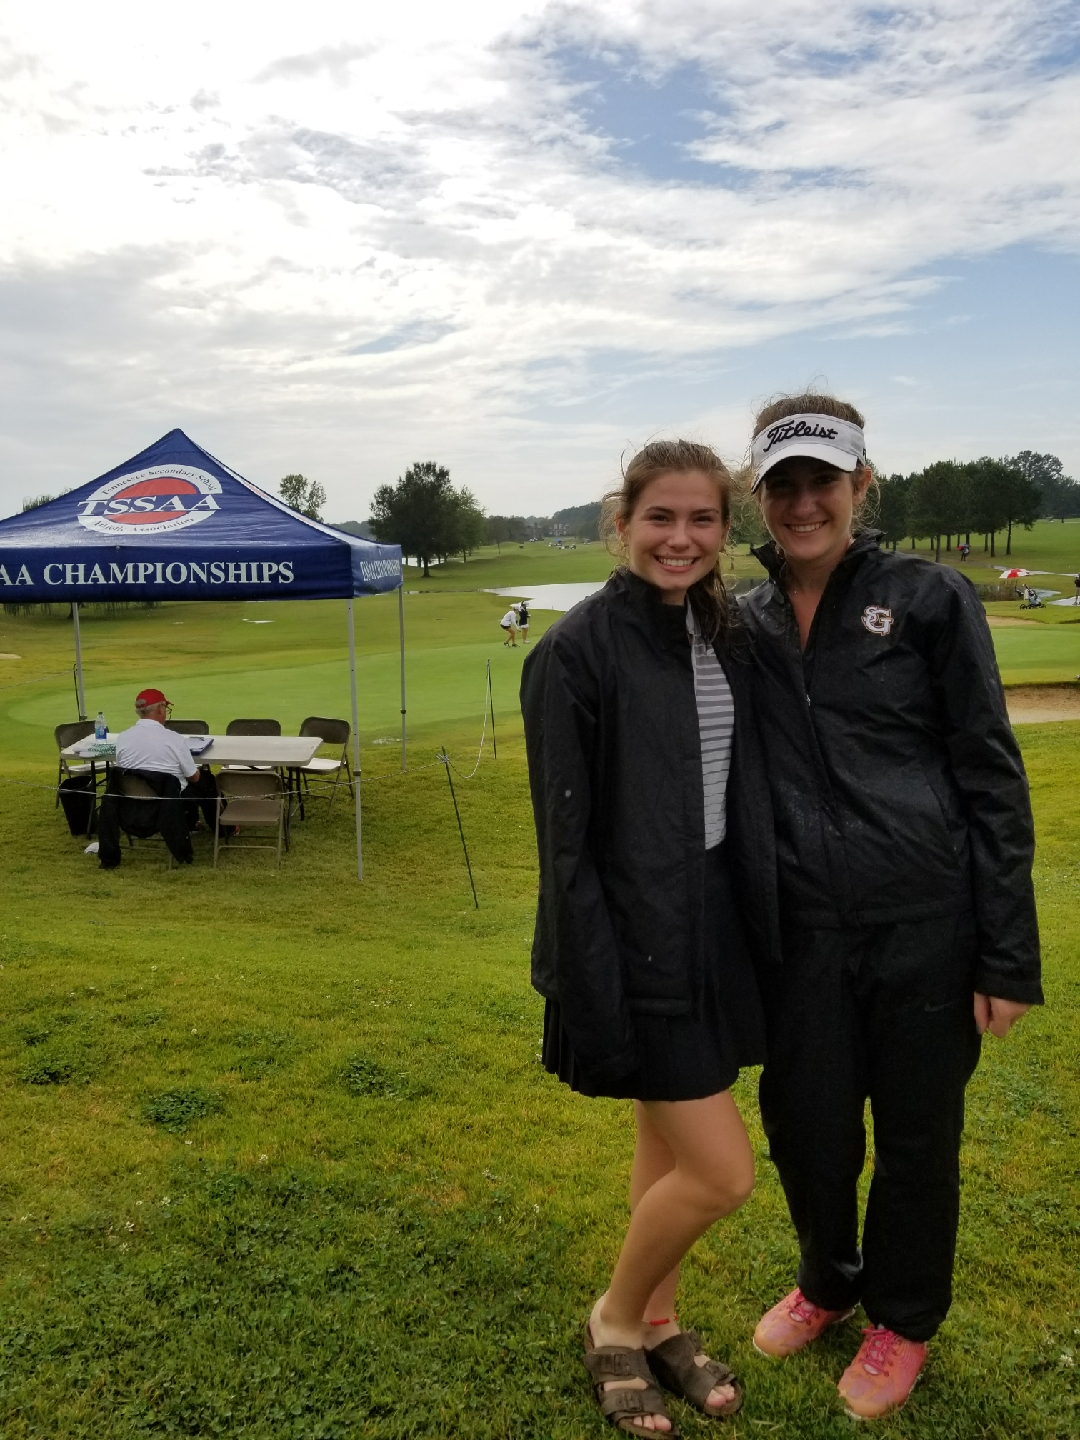 Junior Victoria England (right) stands next to teammate Grace Higley (left) at the girls' golf state championship. England has won the state championship twice.